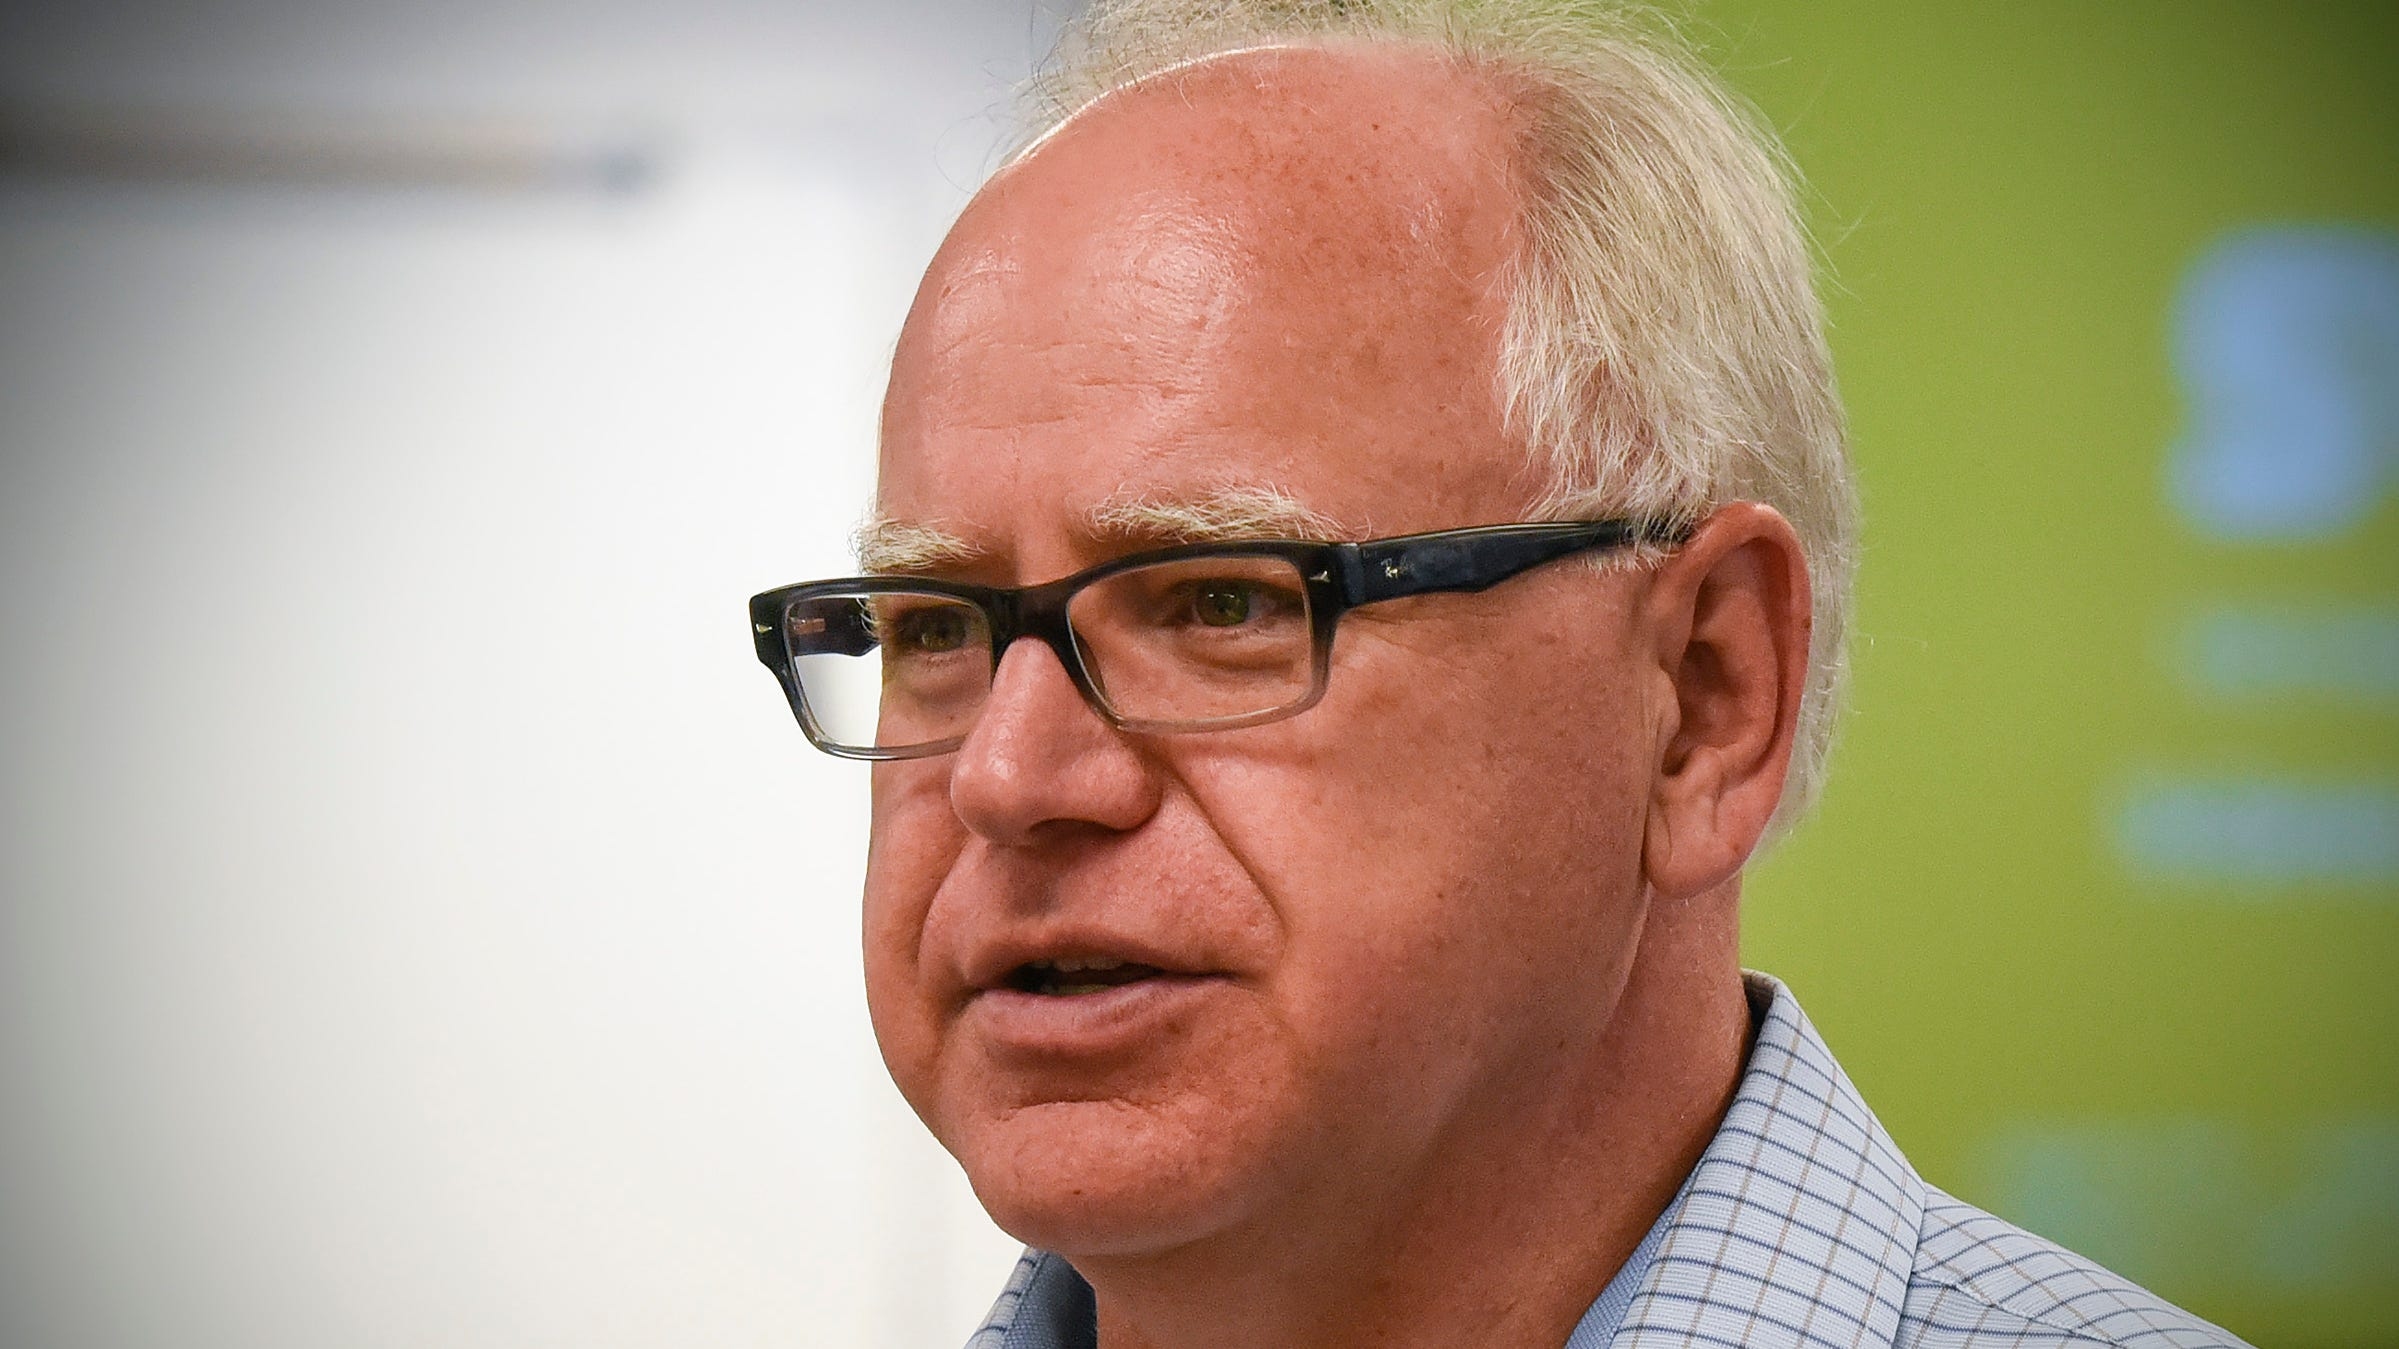 Congressman and candidate for governor Tim Walz talks with students and faculty during a tour of the Integrated Science and Engineering Laboratory Facility Wednesday, Aug. 1, at St. Cloud State University.